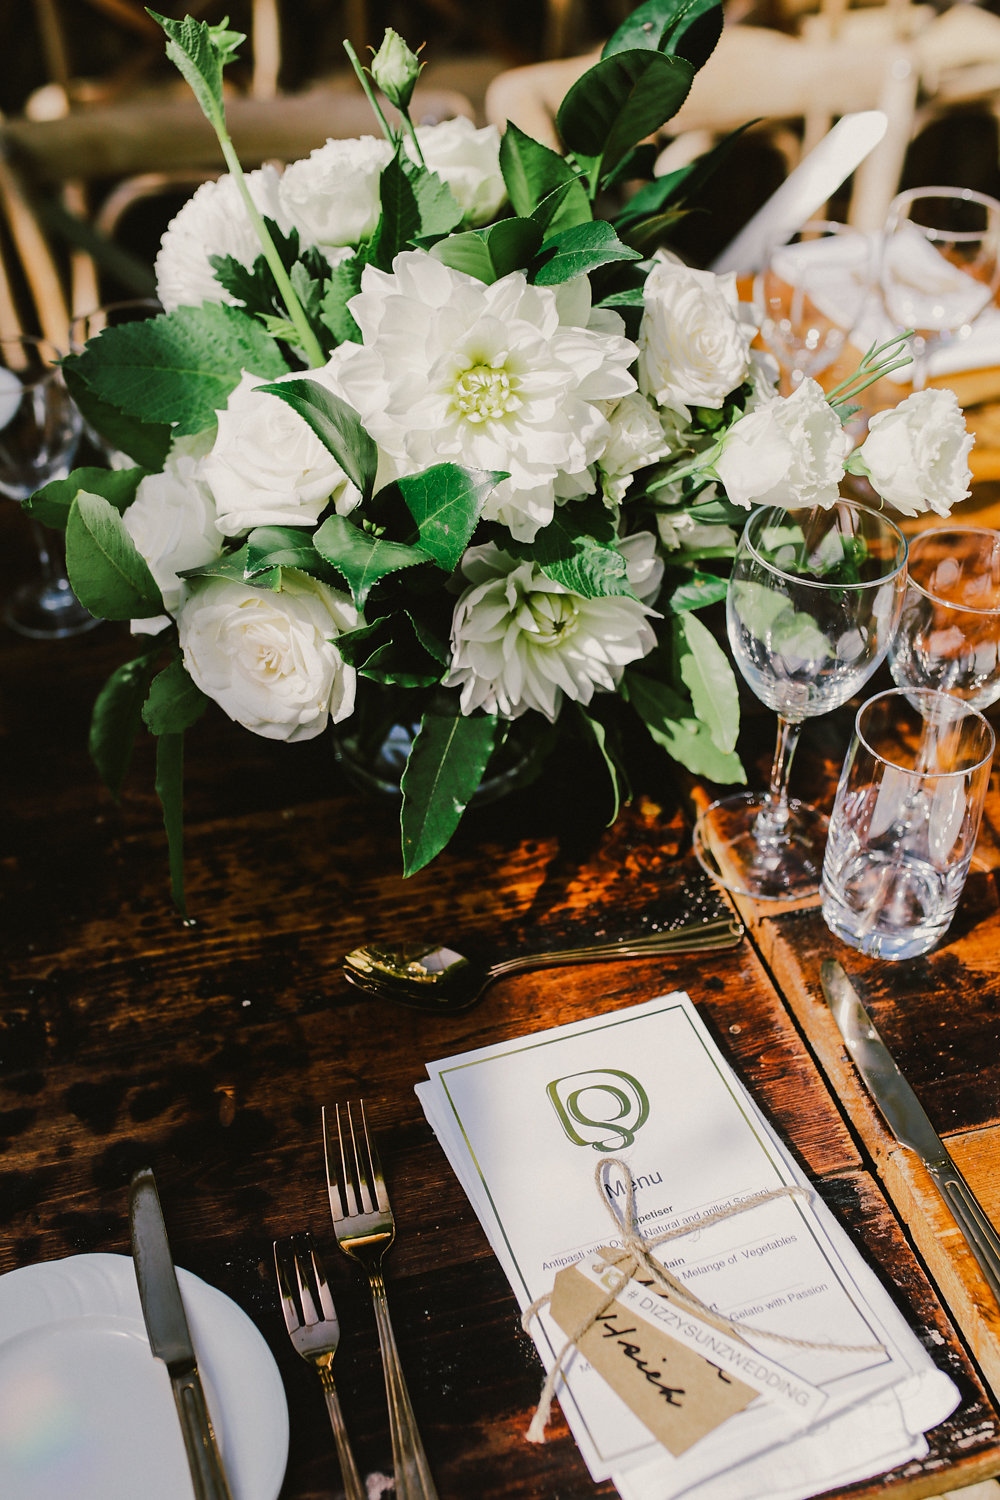 garden wedding place setting - photo by Lara Hotz http://ruffledblog.com/secret-garden-inspired-australian-wedding